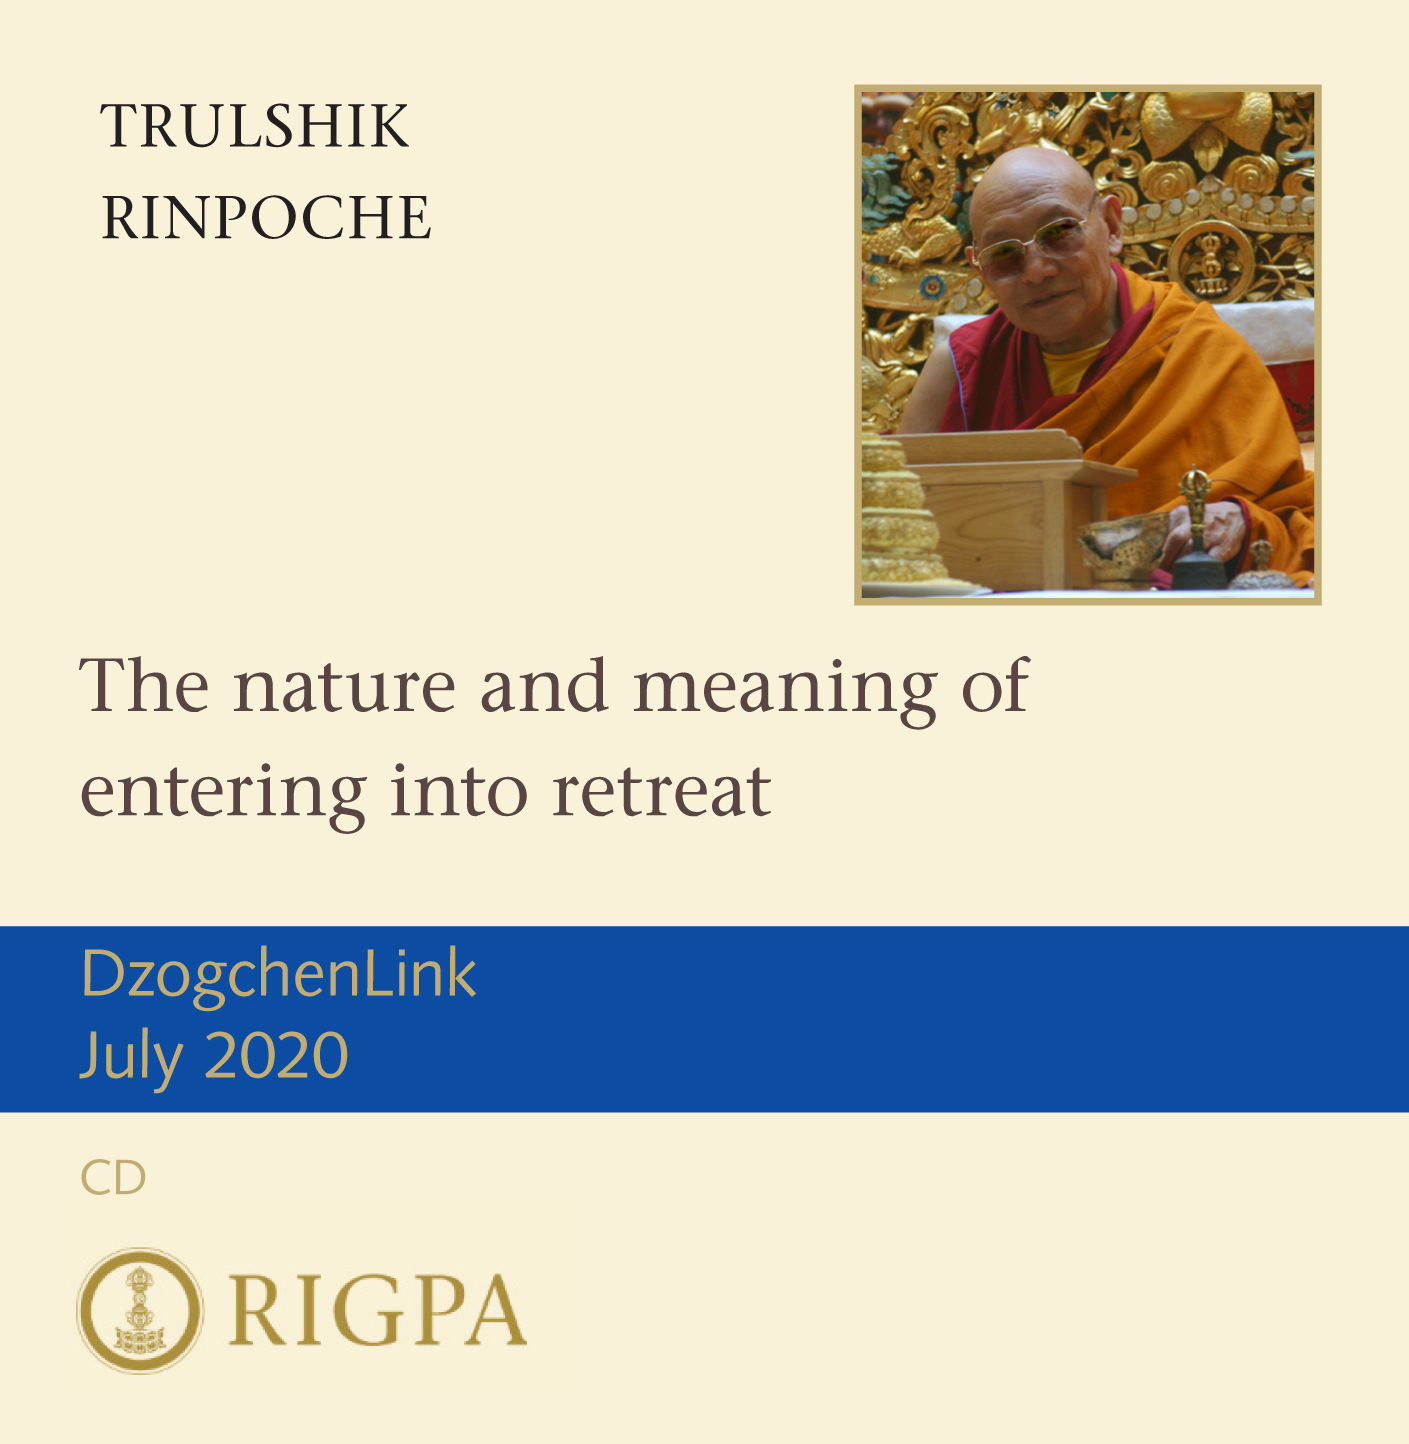 The meaning of entering into retreat - Trulshik Rinpoche audio or video download or MP3 CD